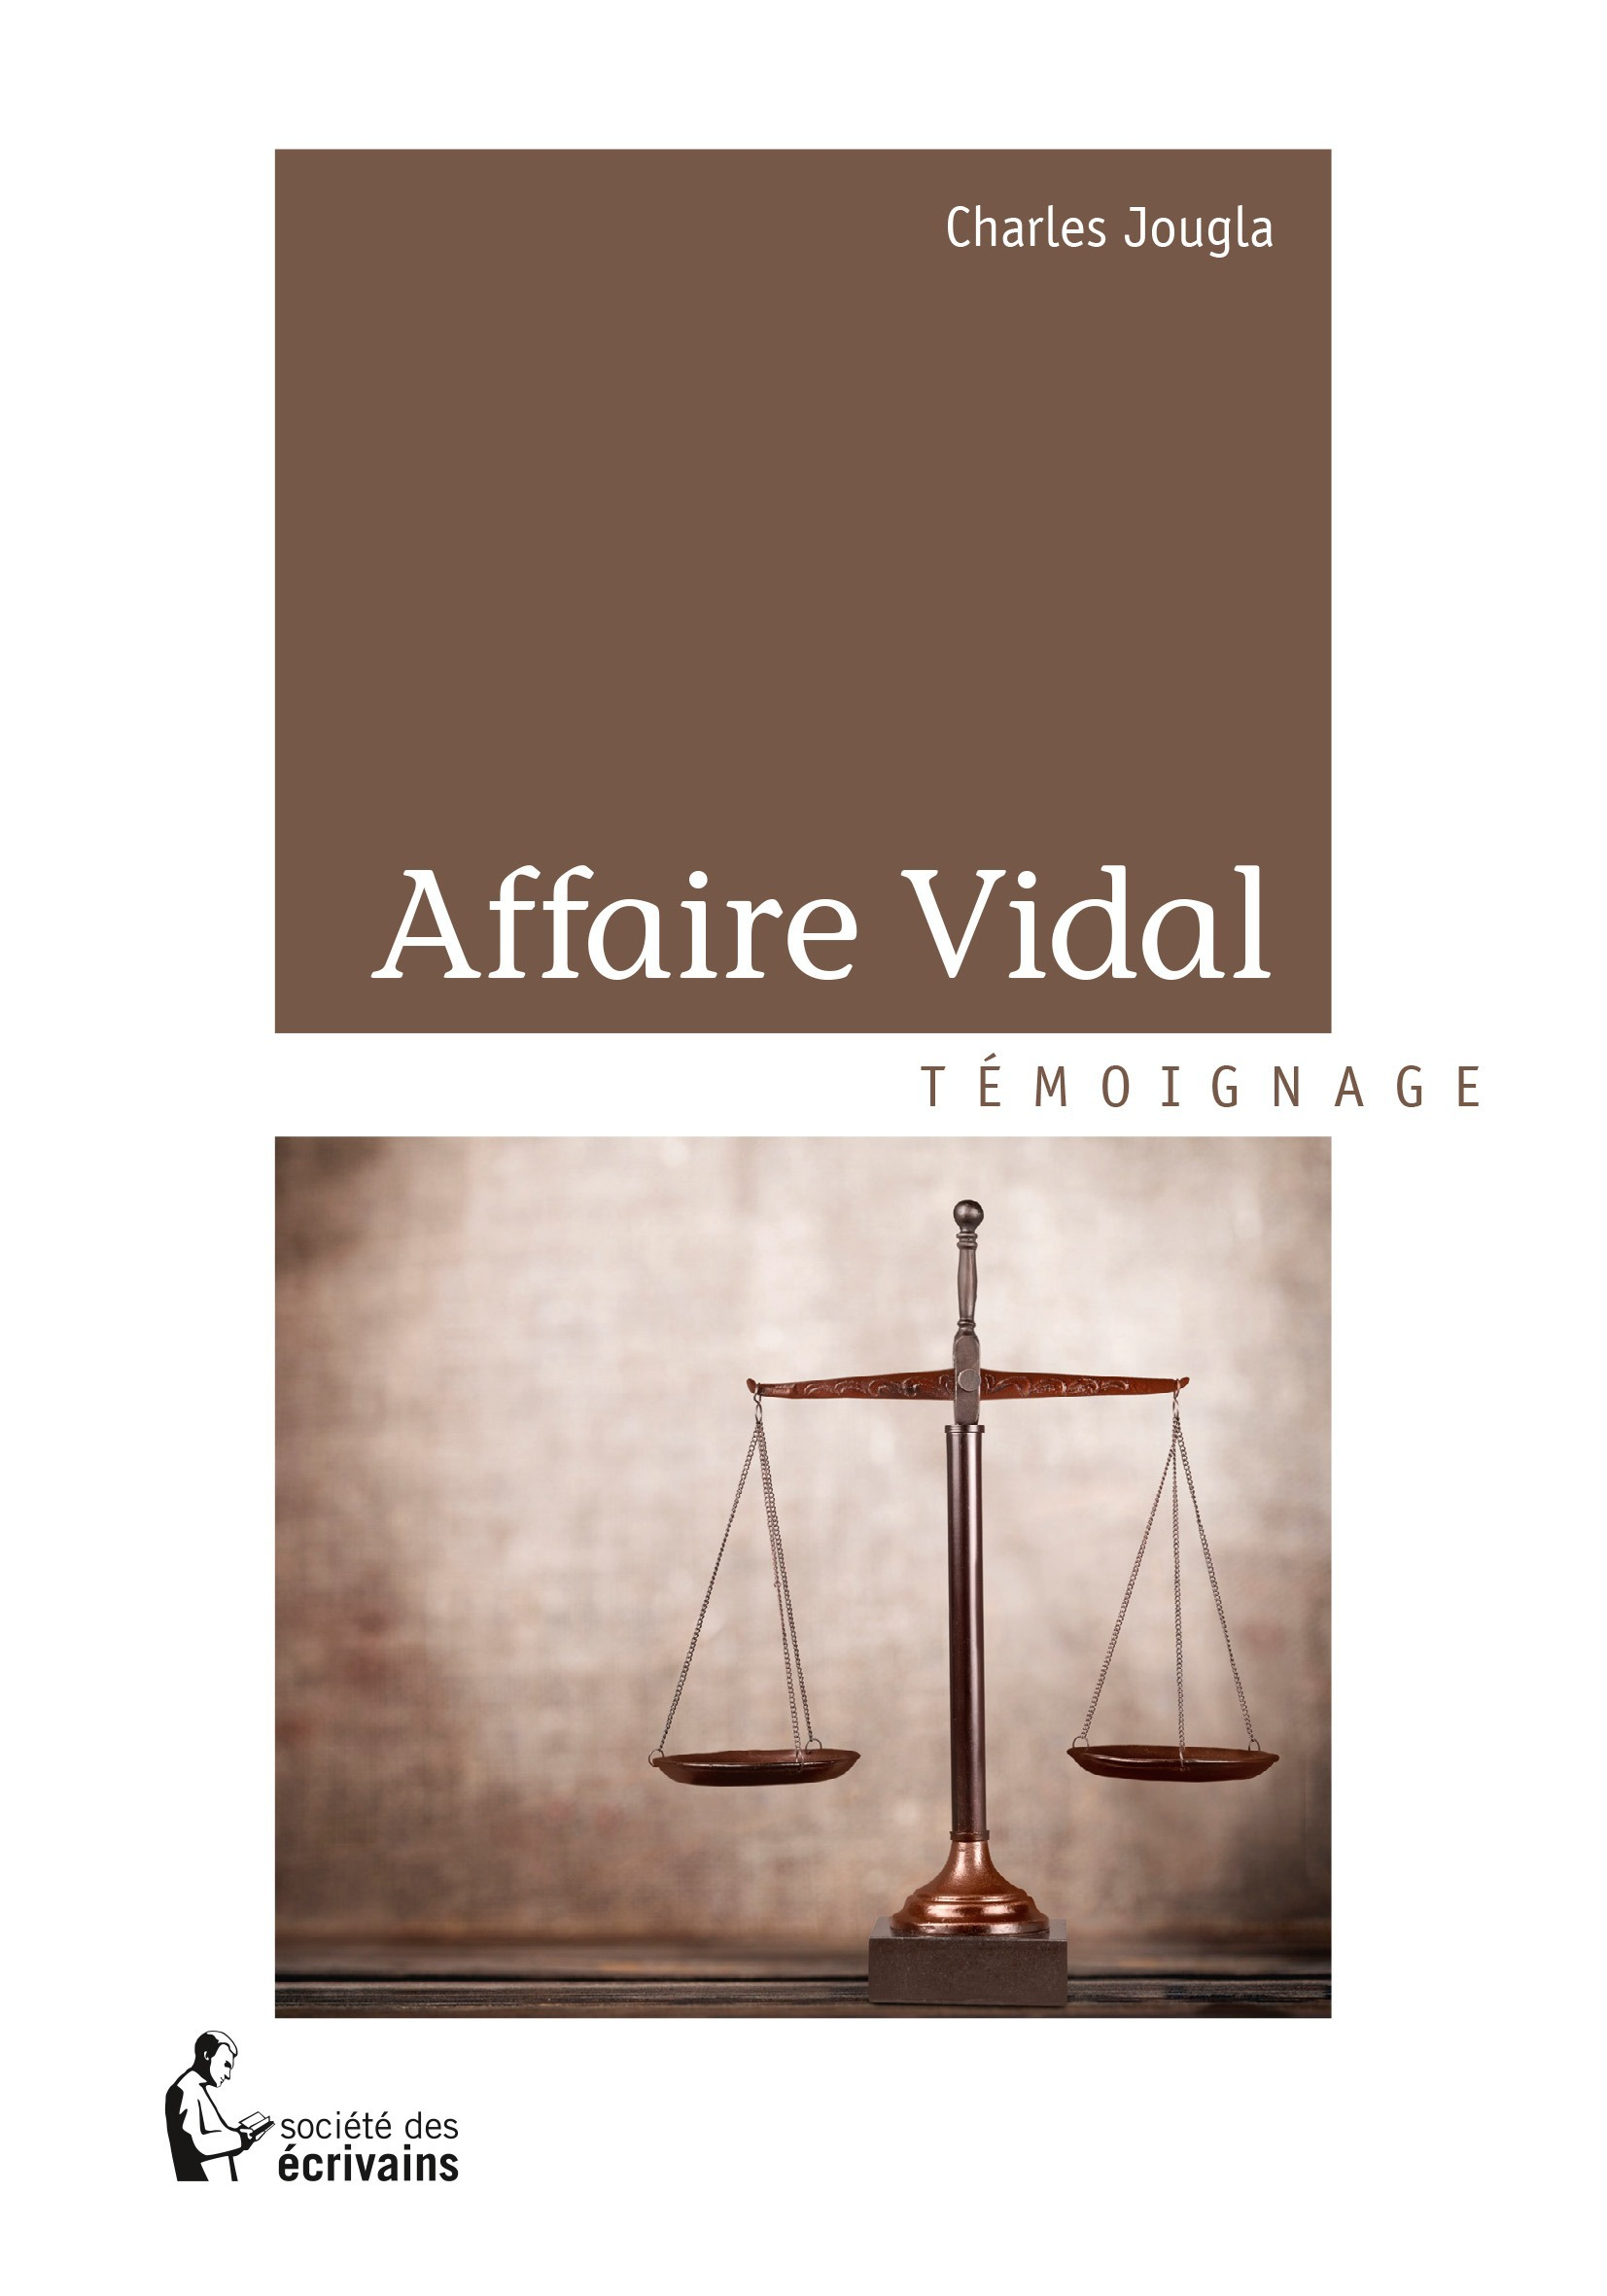 Affaire Vidal